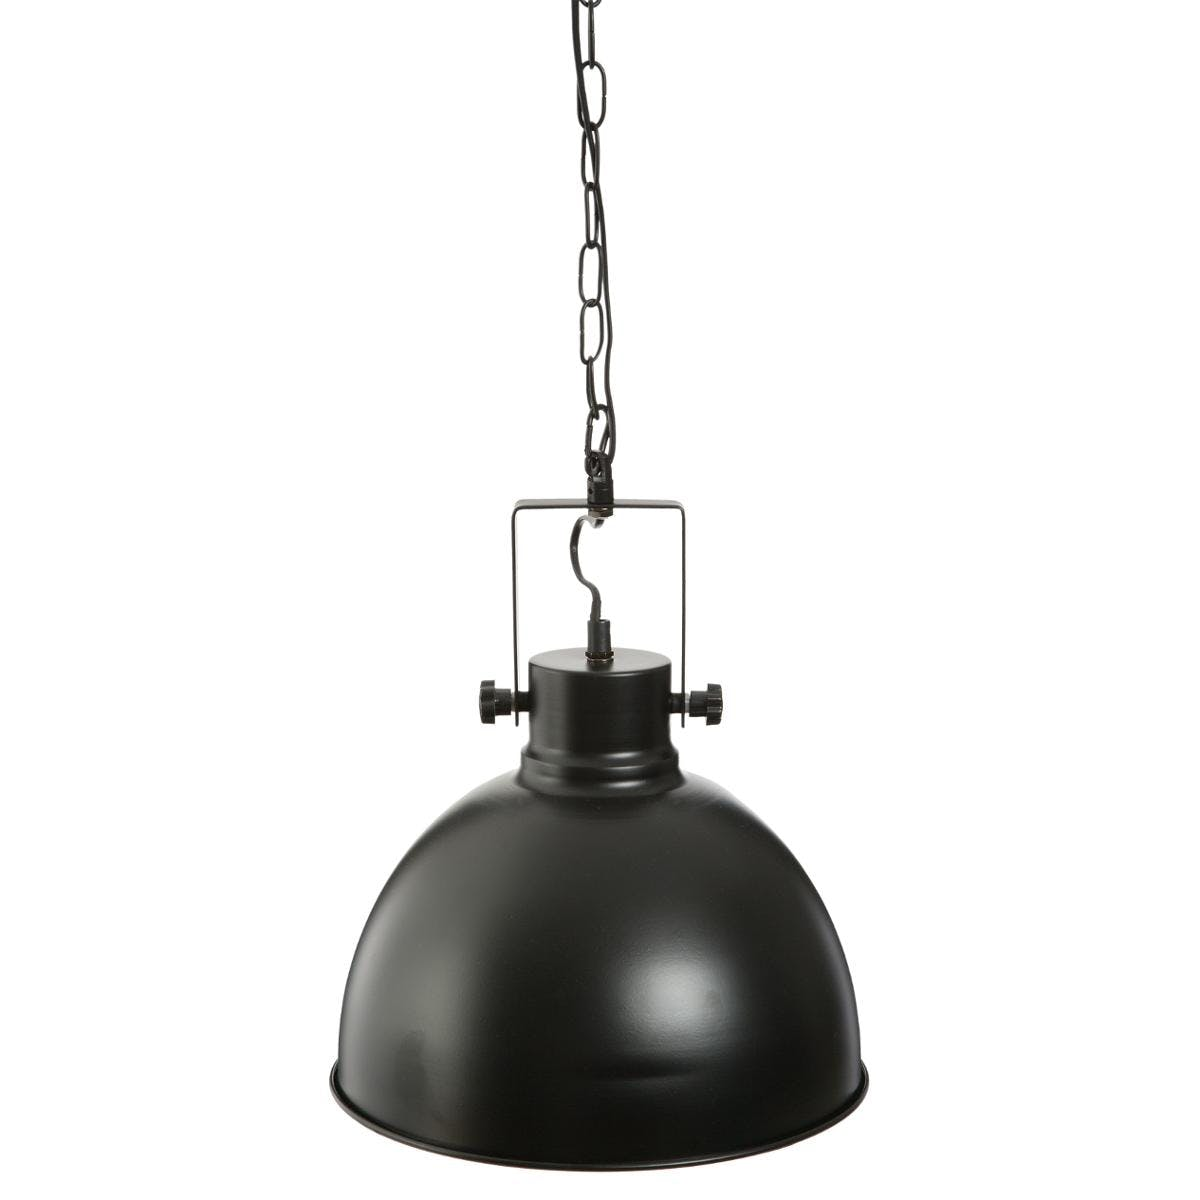 Suspension ronde métal noir D30cm